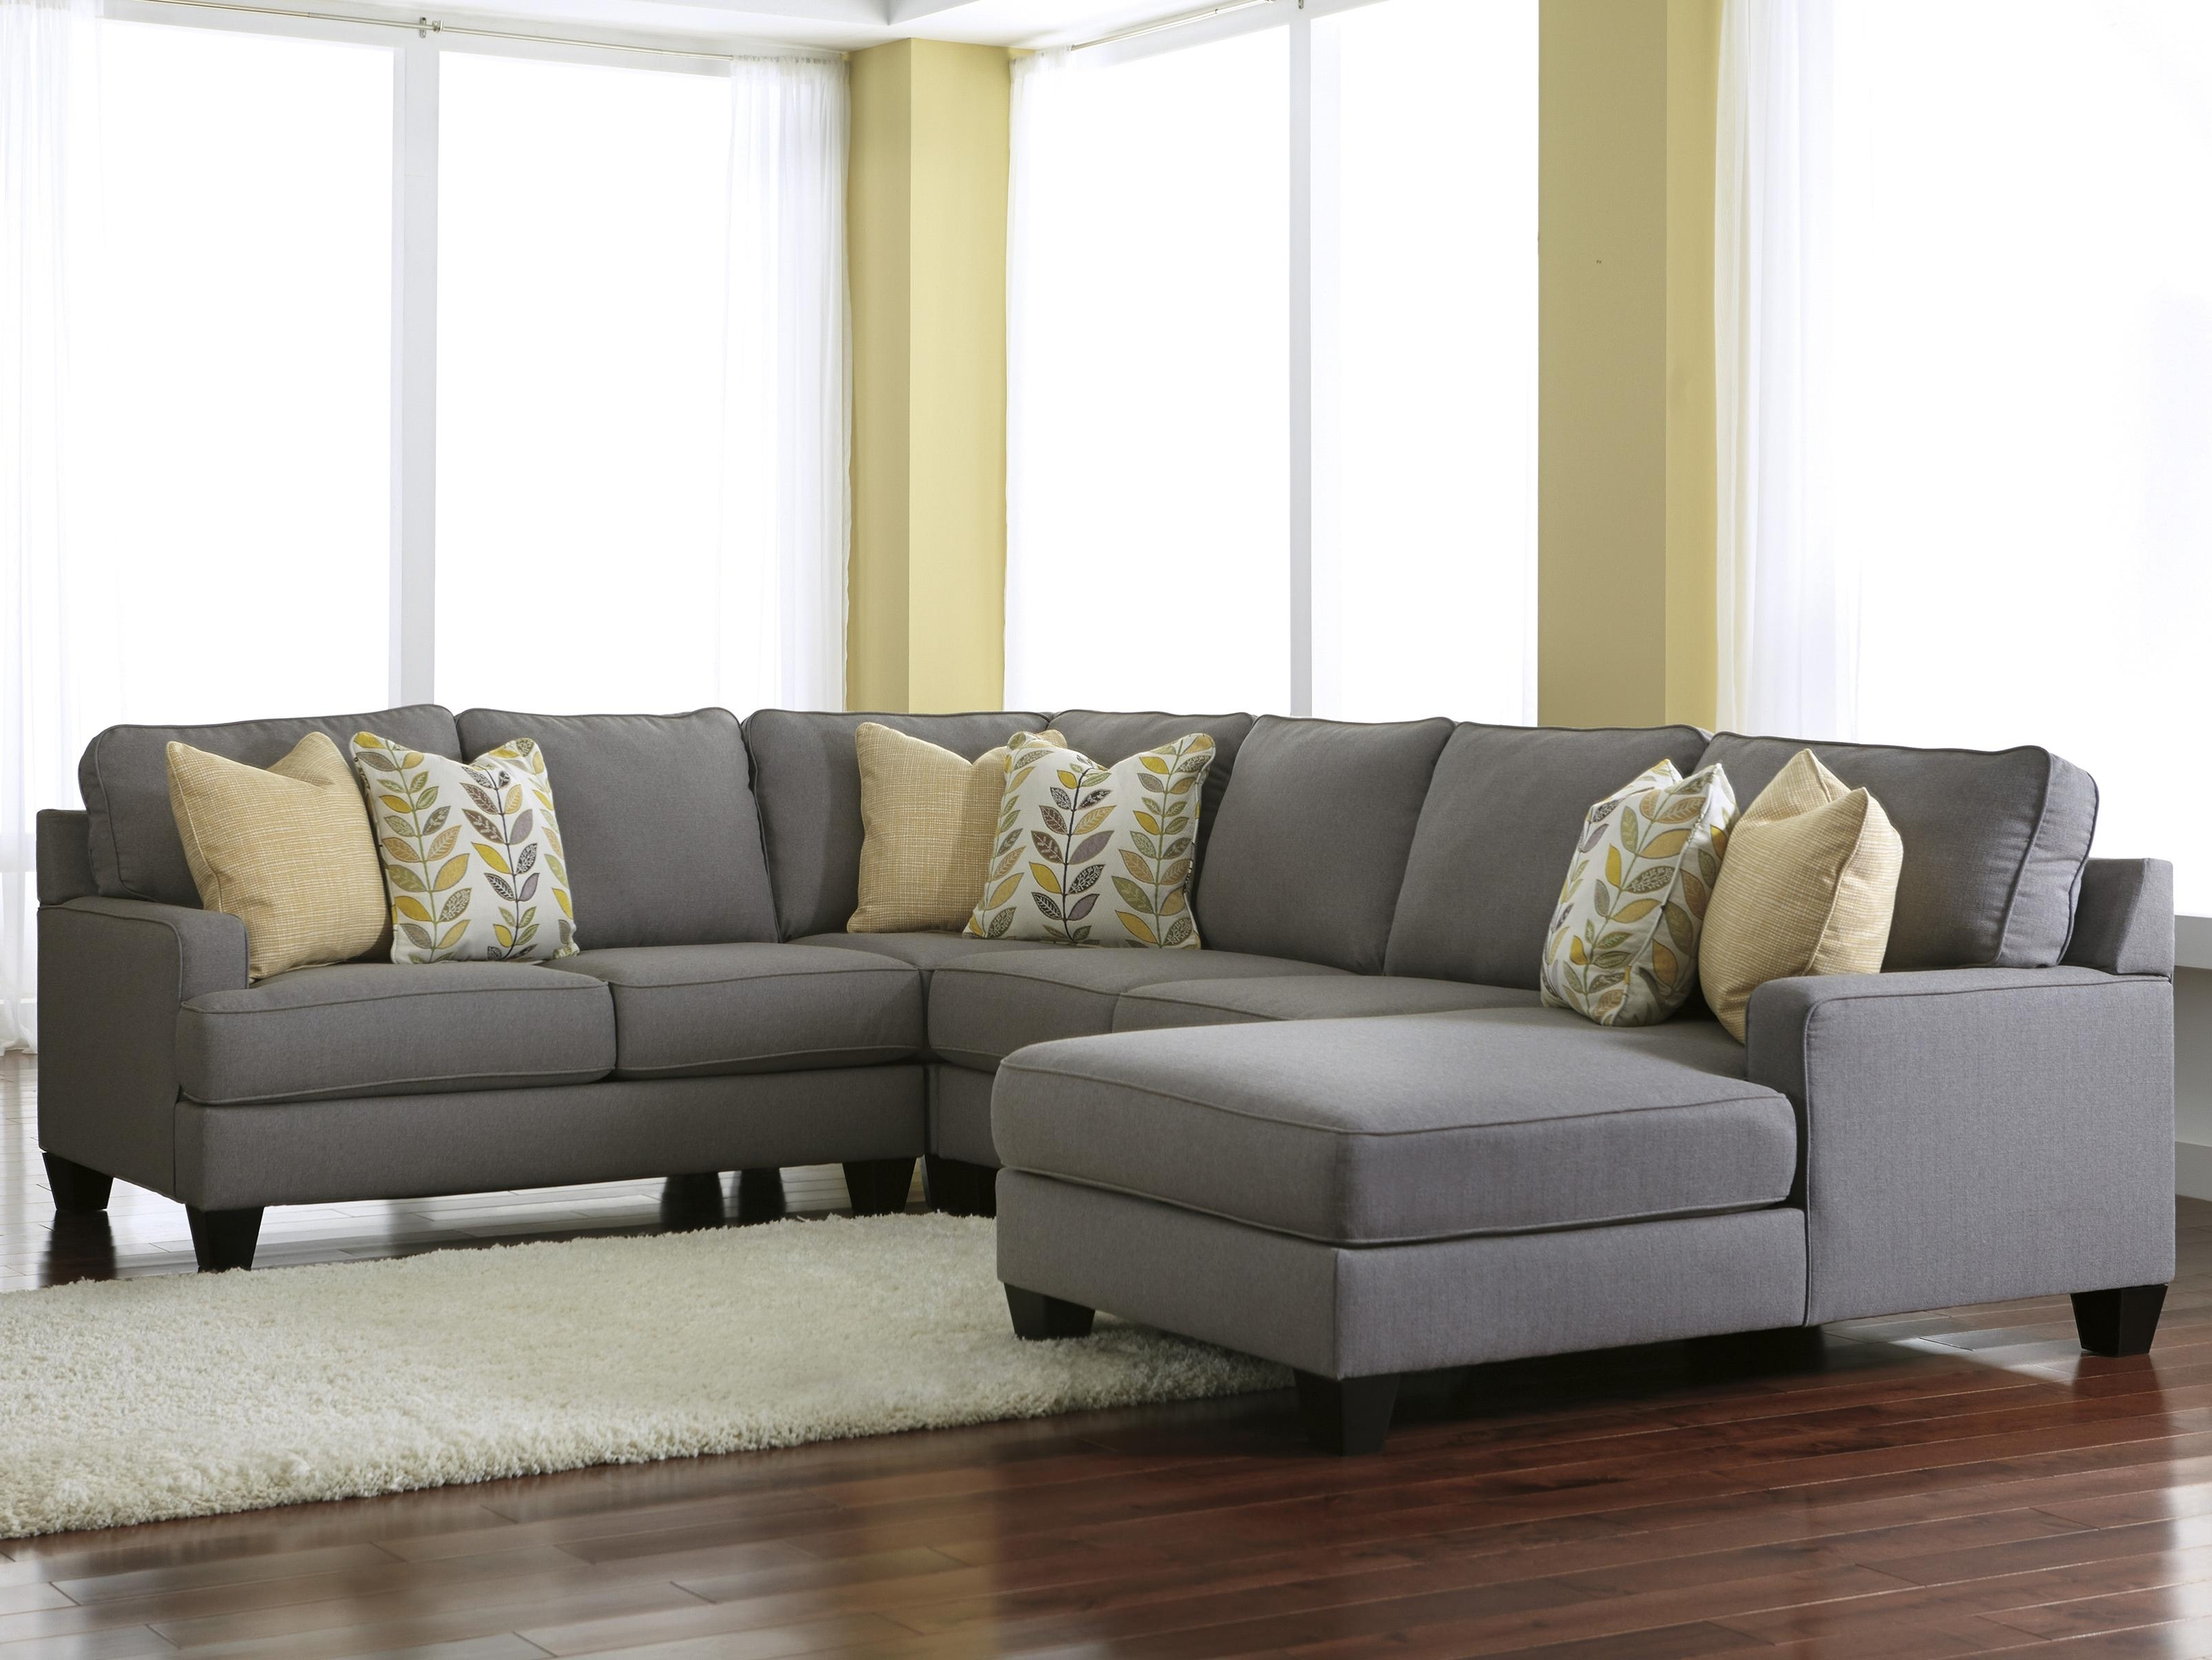 Grey Couches With Chaise In Widely Used Sofa ~ Comfy Sectional Sofa With Chaise Image Sectional Sofa With (View 14 of 15)